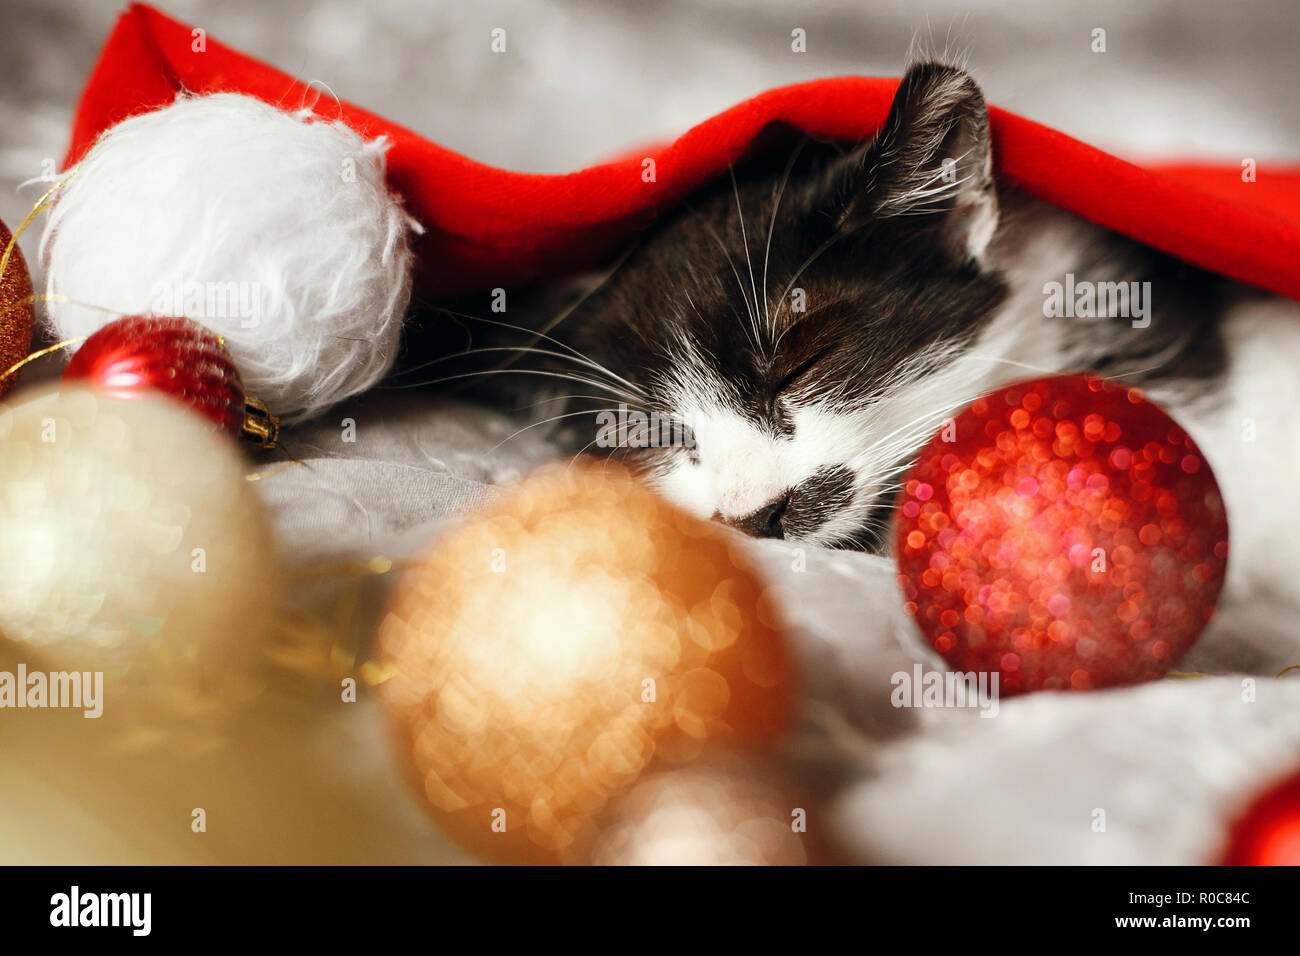 Merry Christmas concept. Cute kitty sleeping in santa hat on bed with gold and red christmas baubles in festive room. Atmospheric image. Season's gree - Stock Image